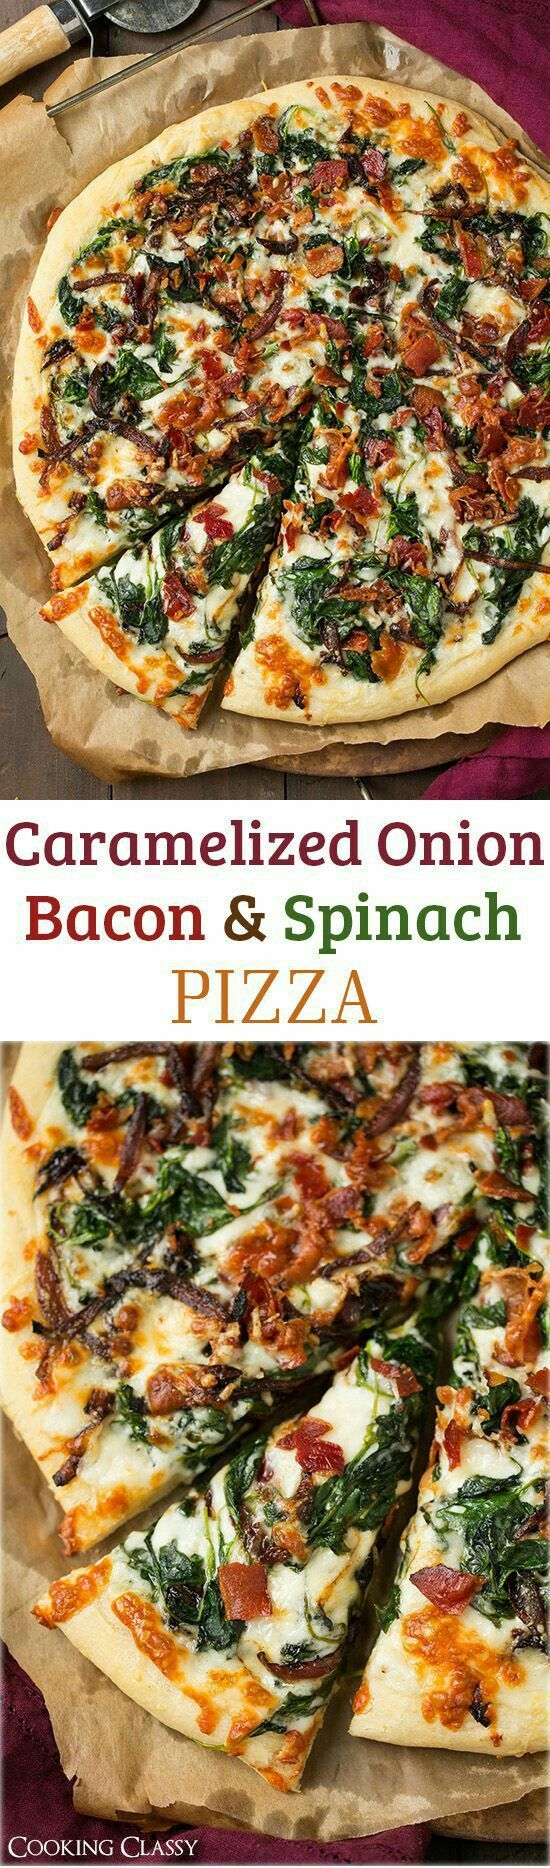 cool Caramelized Onion, Bacon, and Spinach Pizza : cookingclassy...